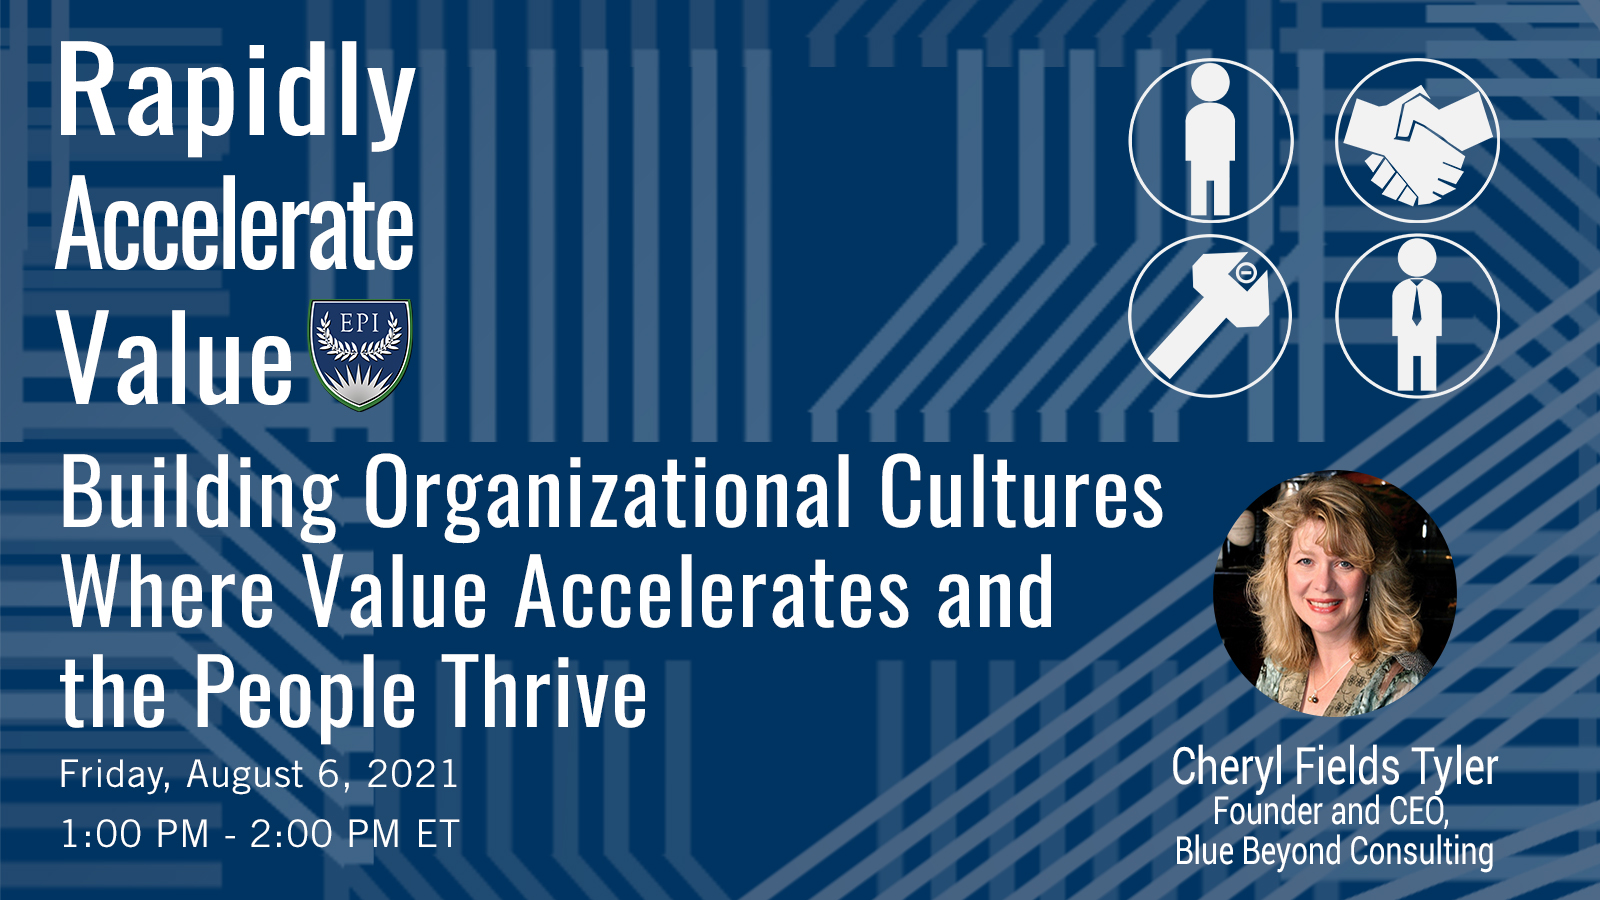 Building Organizational Cultures Where People Thrive